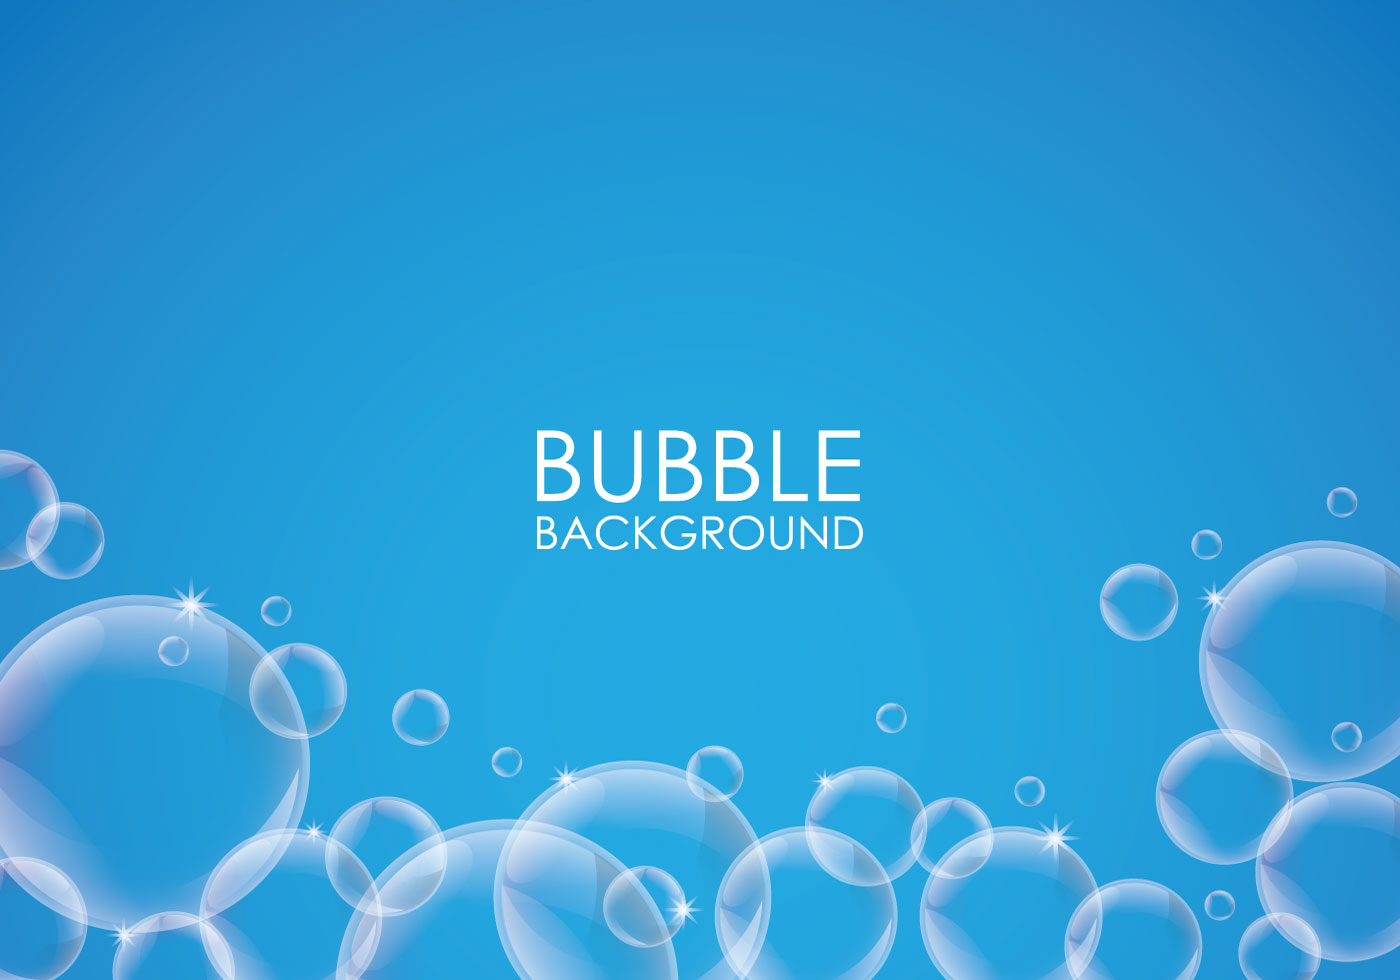 Soap Bubble Background - Download Free Vector Art, Stock ...